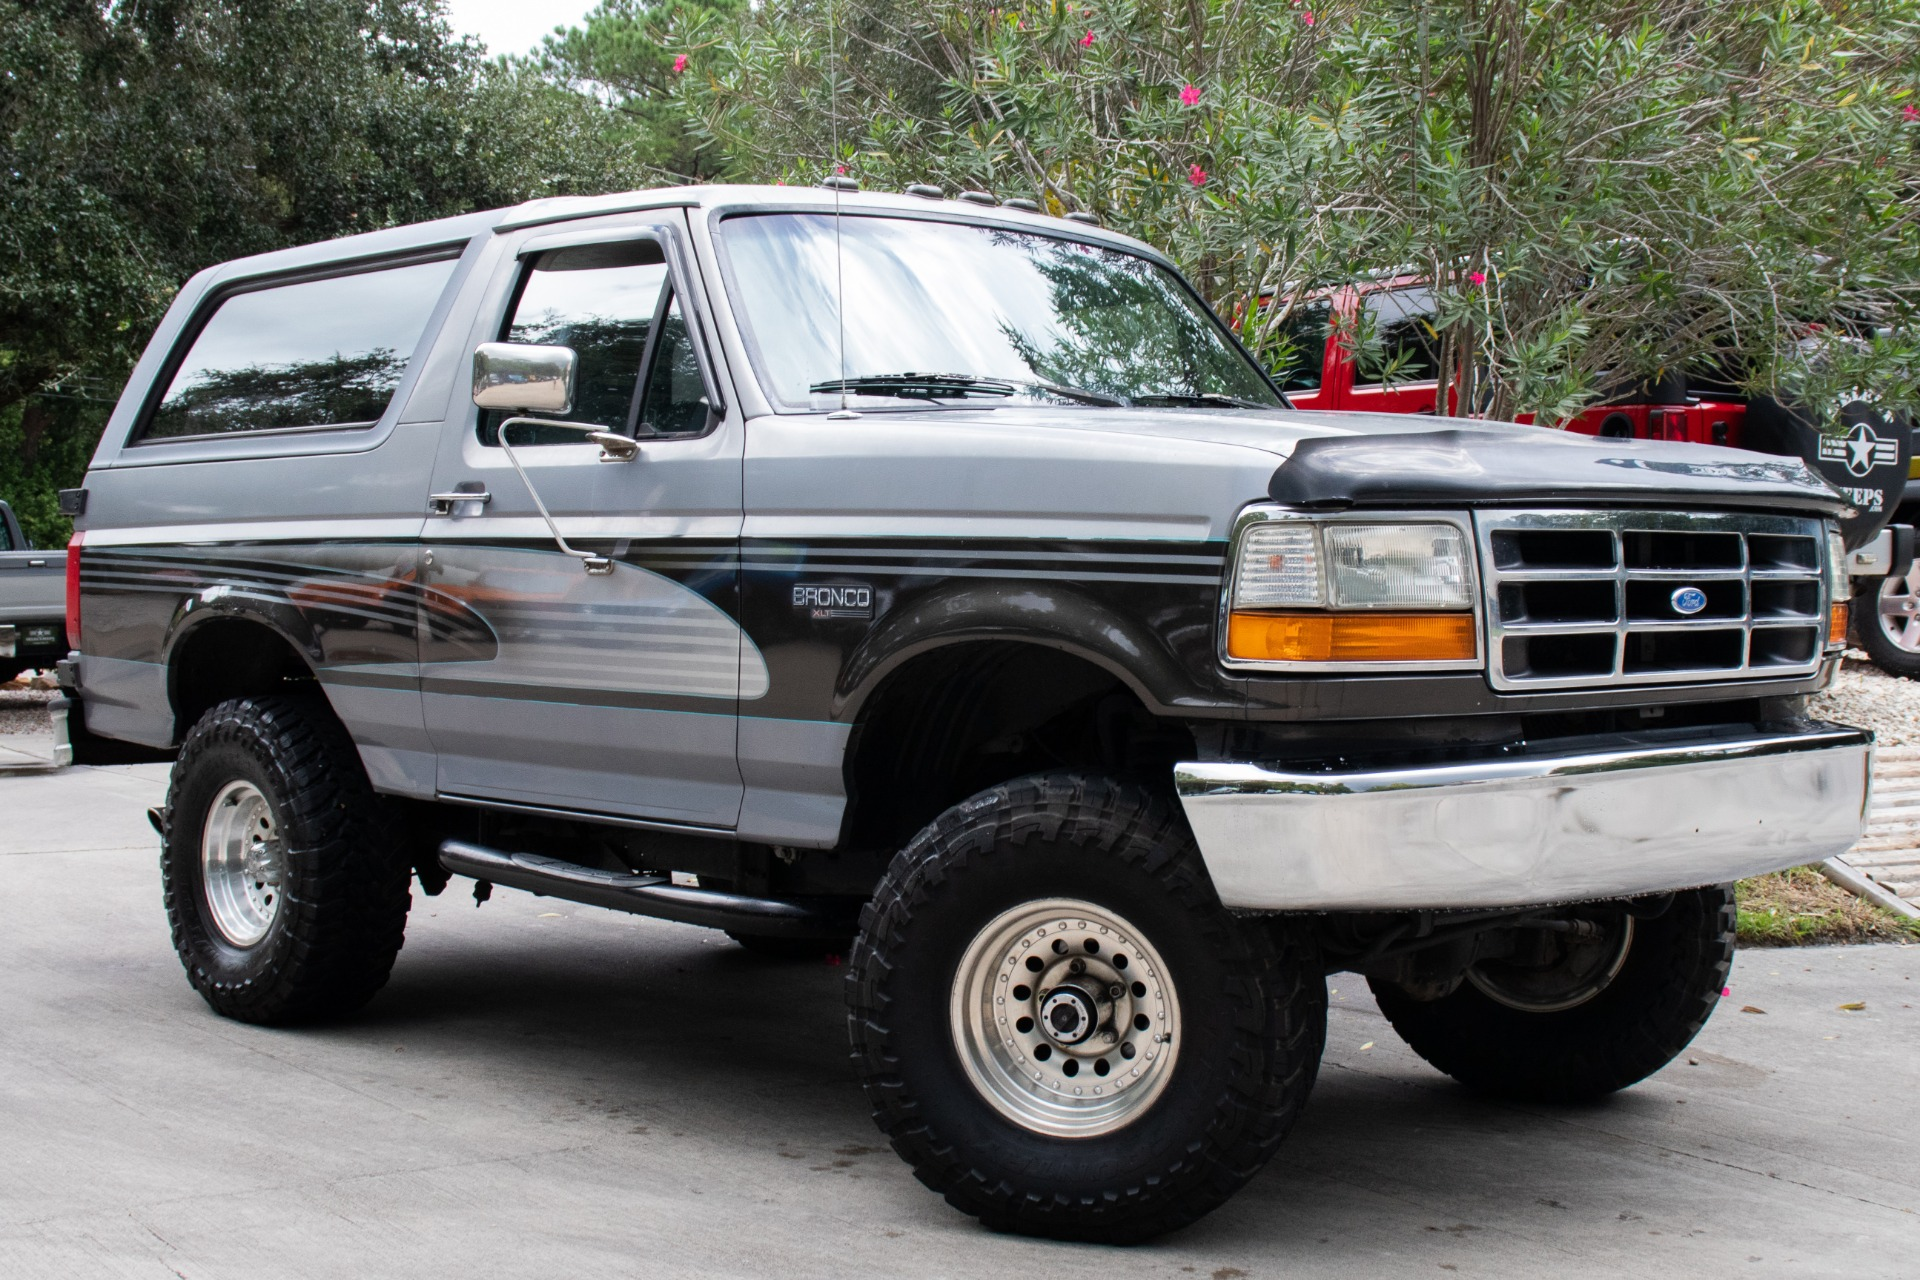 1995 Ford Bronco >> Used 1995 Ford Bronco Xlt For Sale 10 995 Select Jeeps